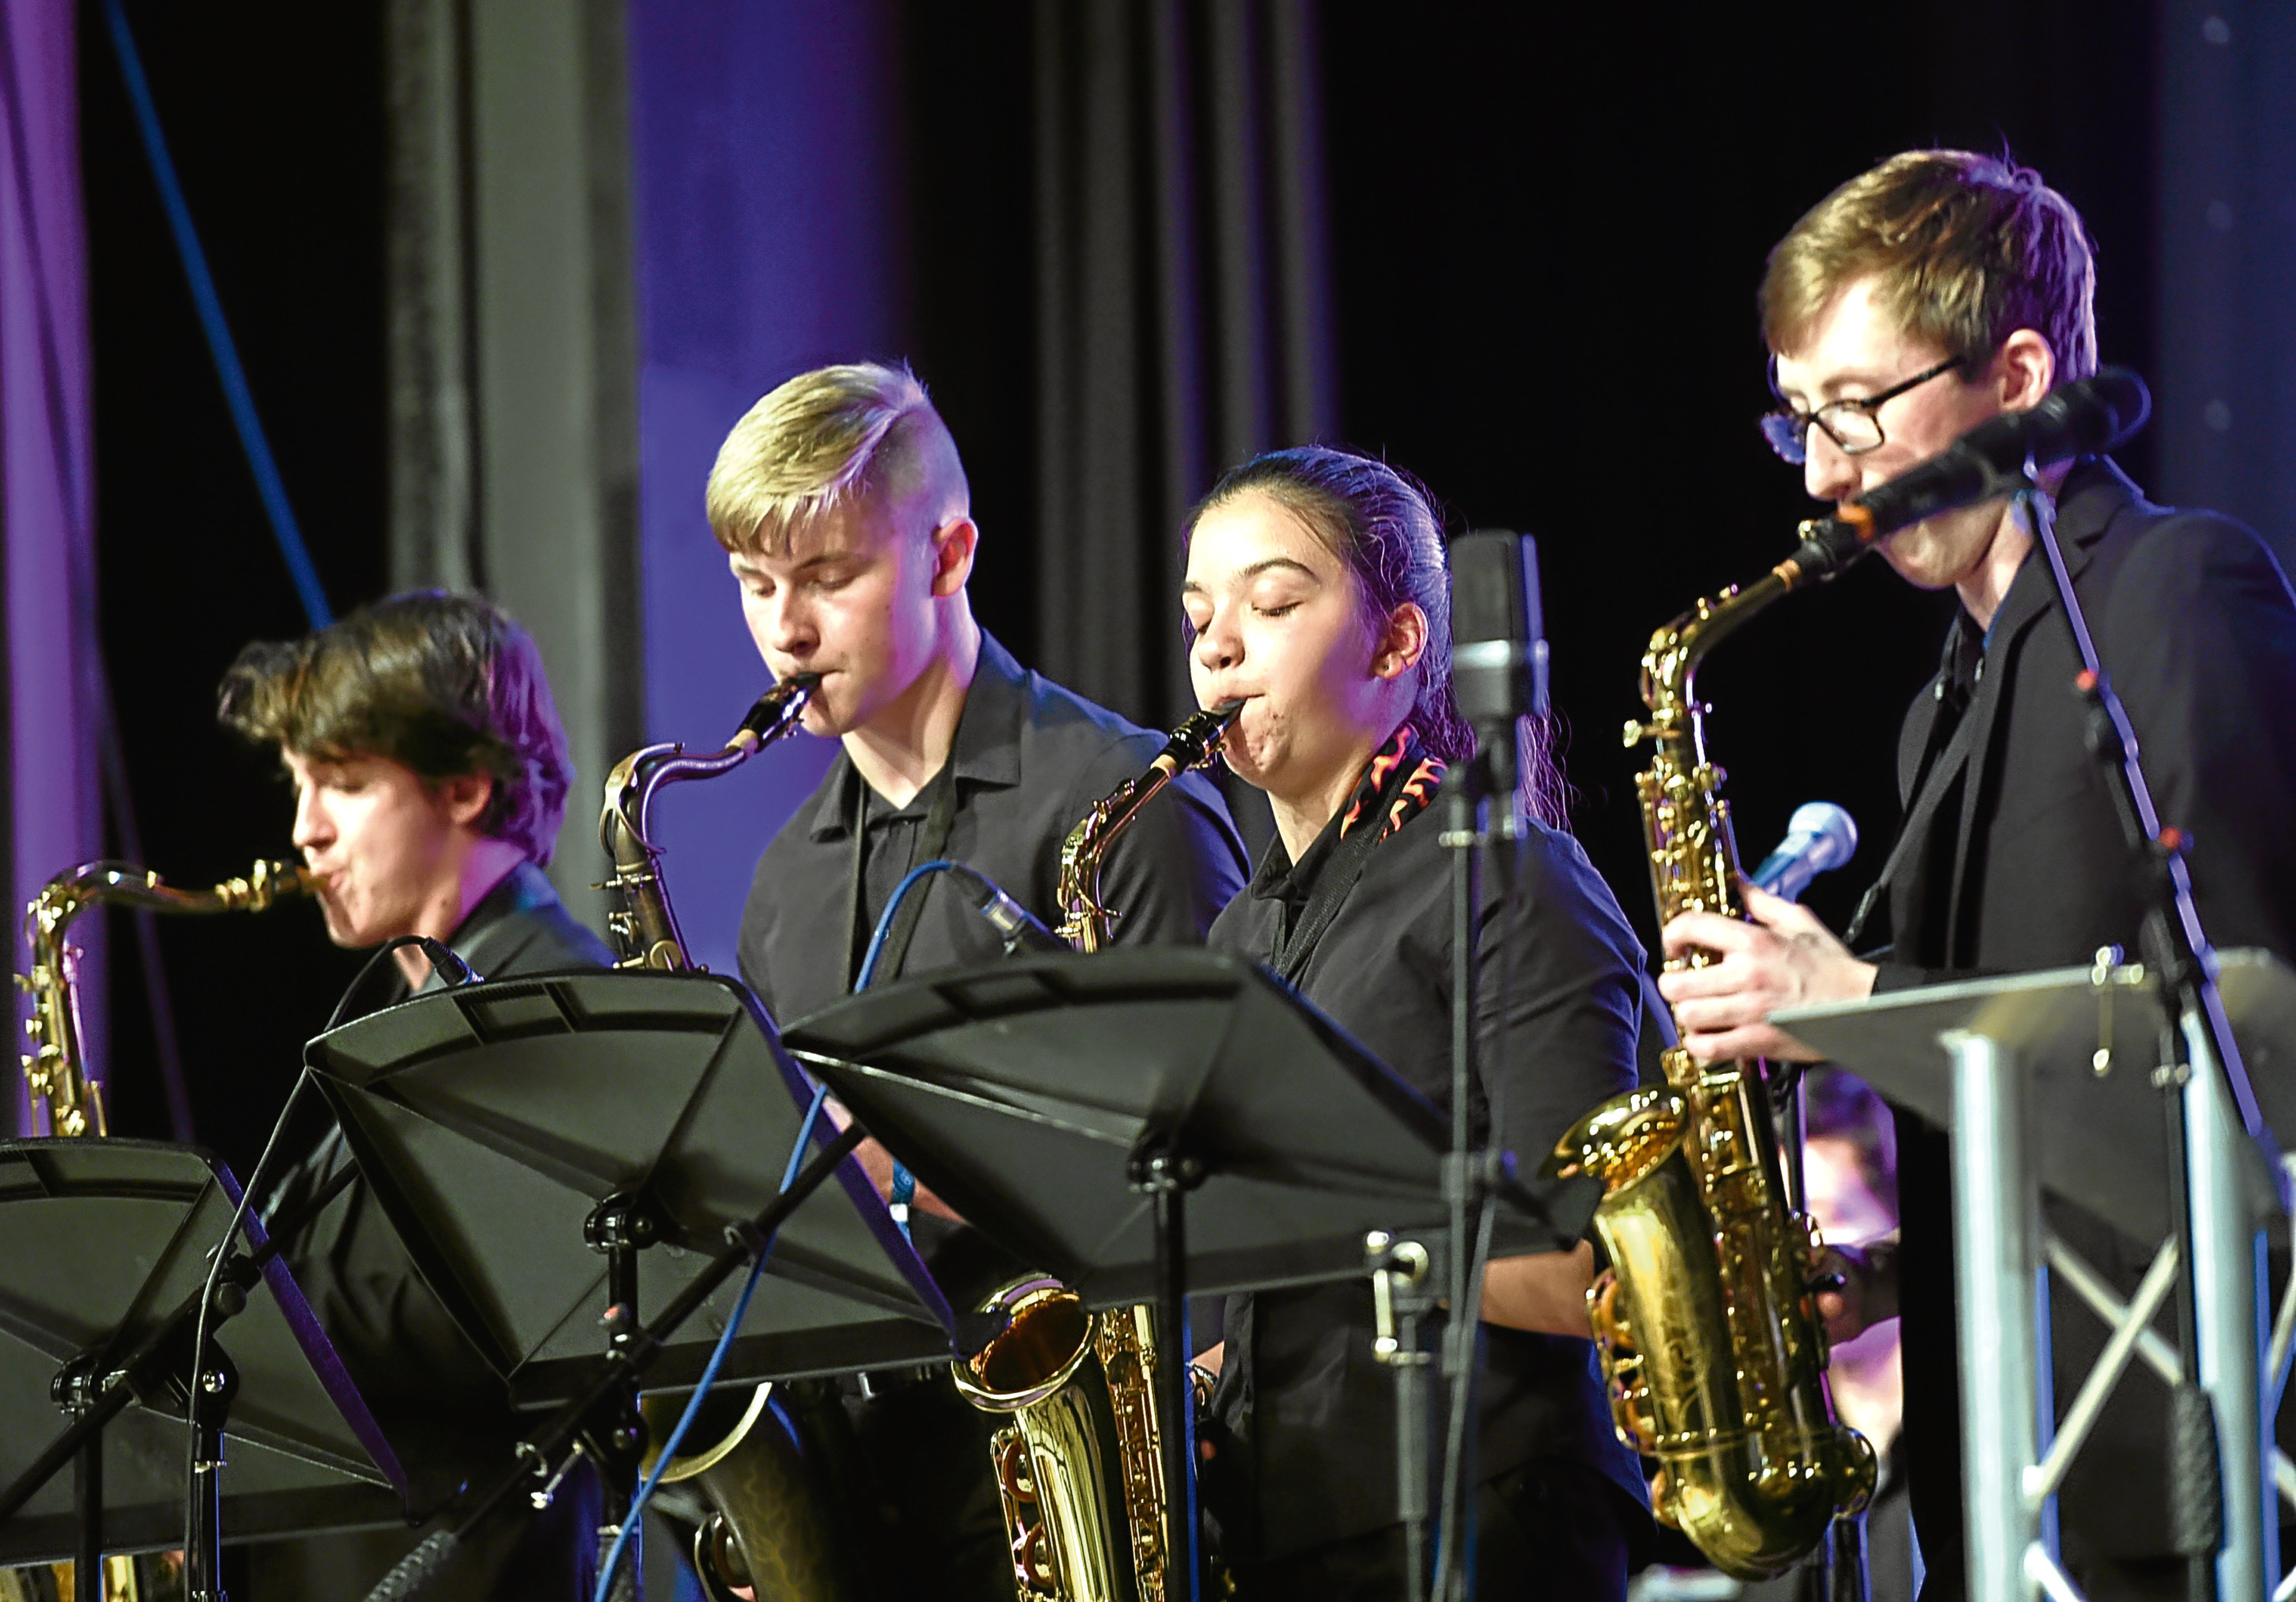 The Aberdeen Youth Jazz Band at the opening ceremony of the Aberdeen International Youth Festival (AIYF) 2017 at the Beach Ballroom, Aberdeen.